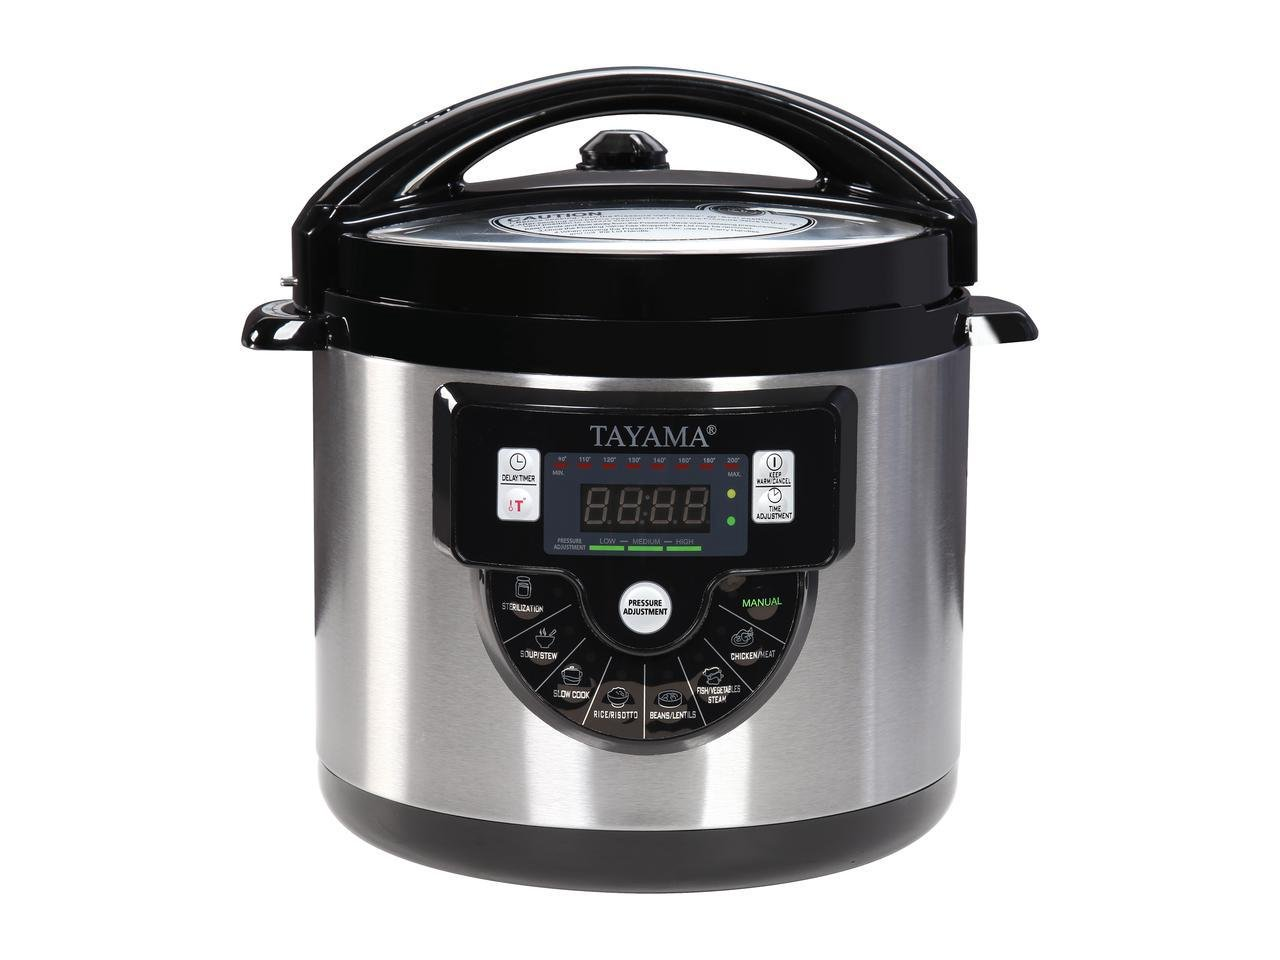 Tayama TMC-60XL 6 Quart 8 in 1 Multi Function Pressure Cooker 6 Qt Black